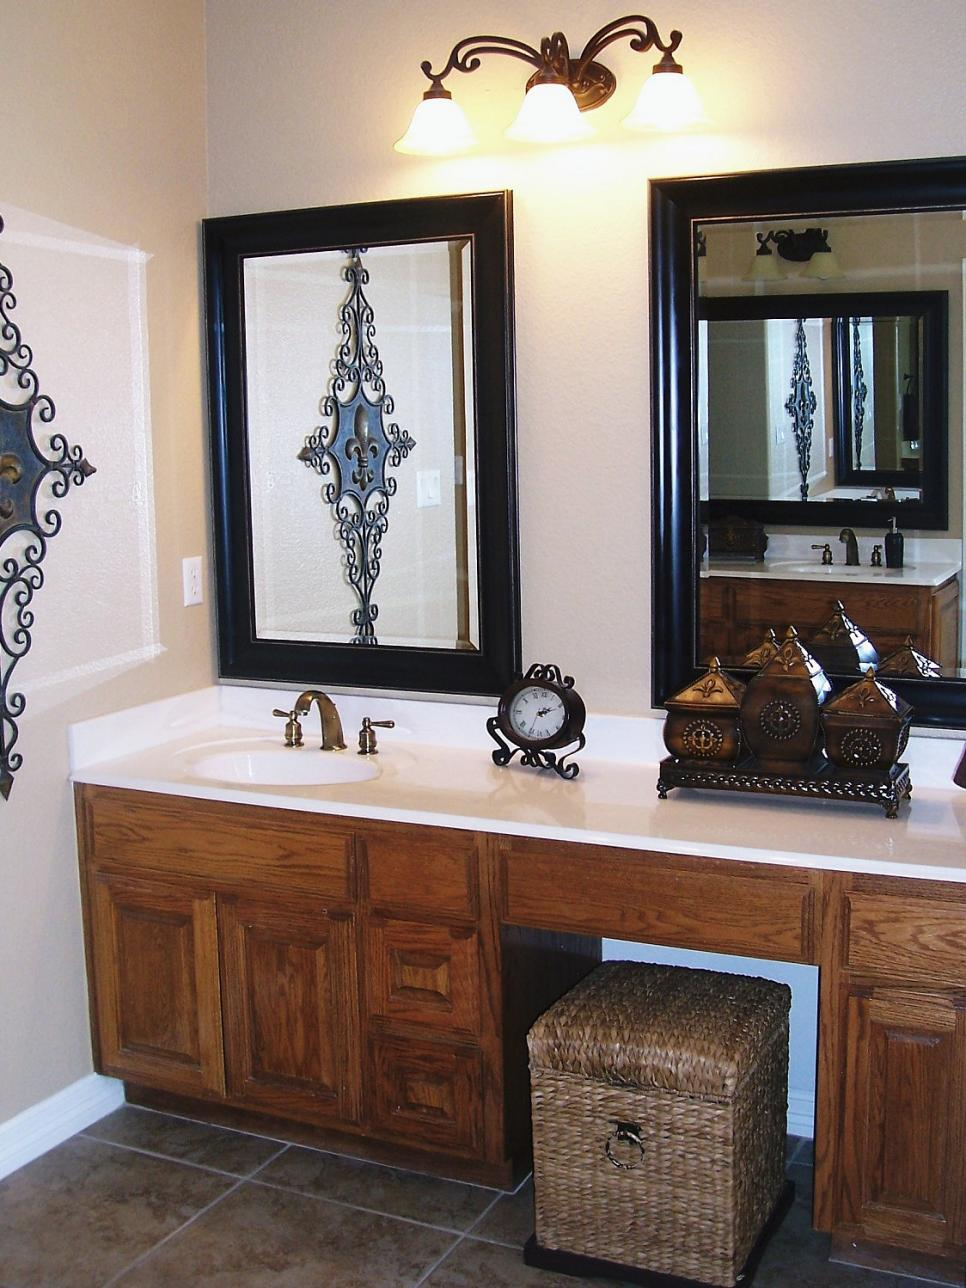 Bathroom Mirror Decor Ideas 10 beautiful bathroom mirrors | hgtv